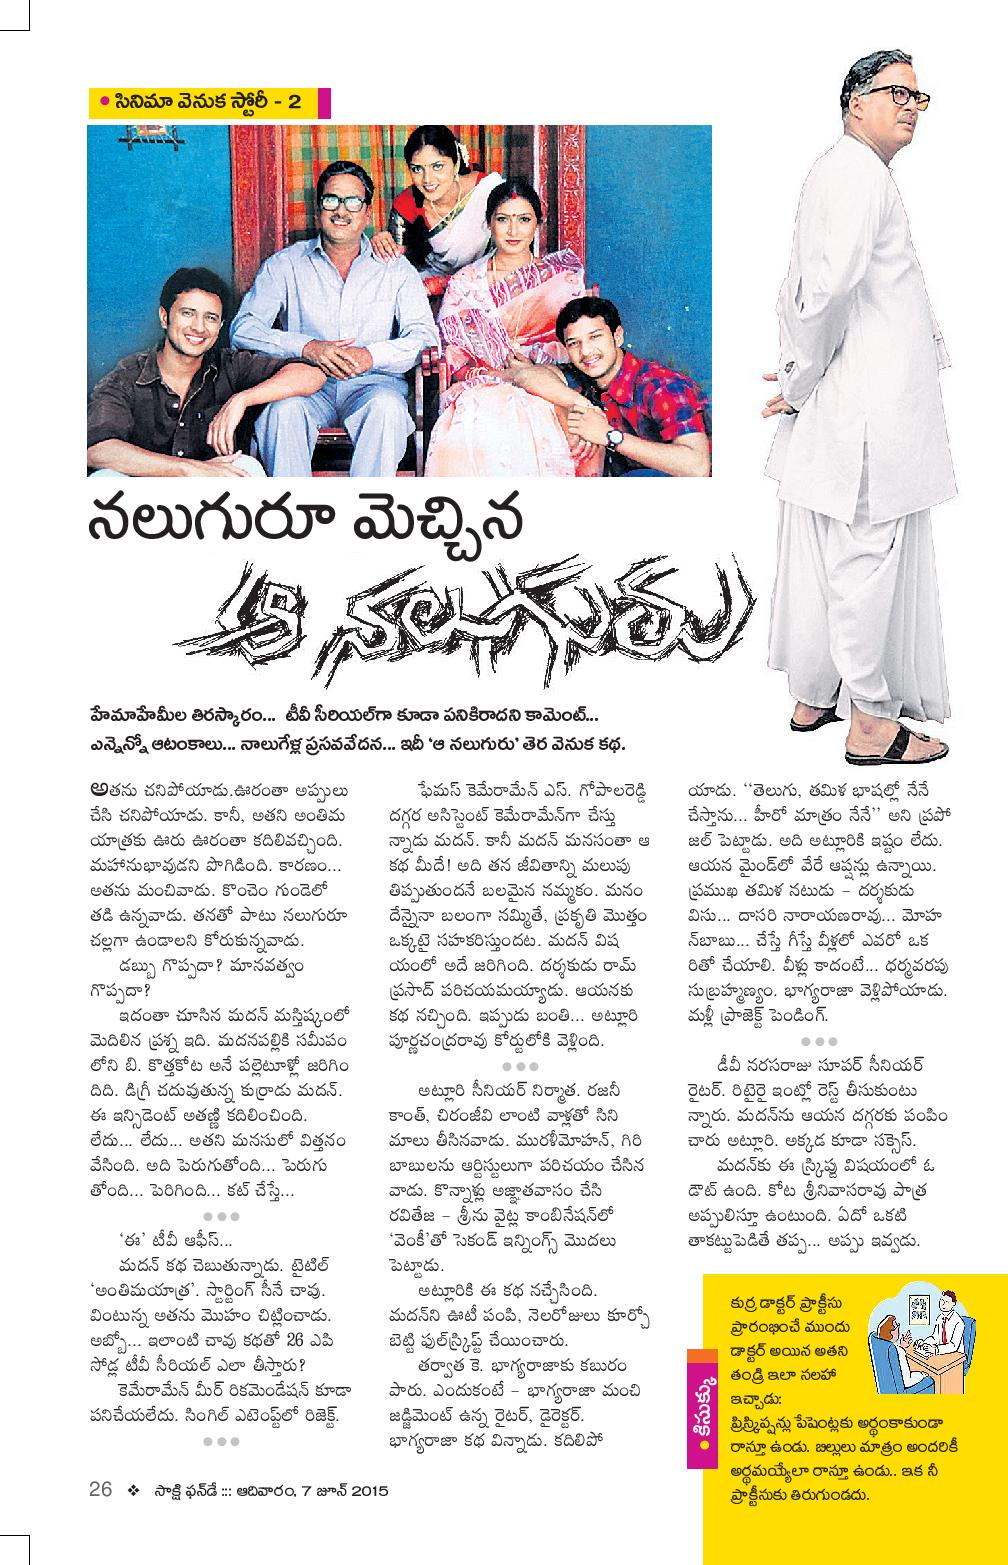 Cinema Venuka Story-Aa Naluguru_Funday (7-6-2015)-page-001